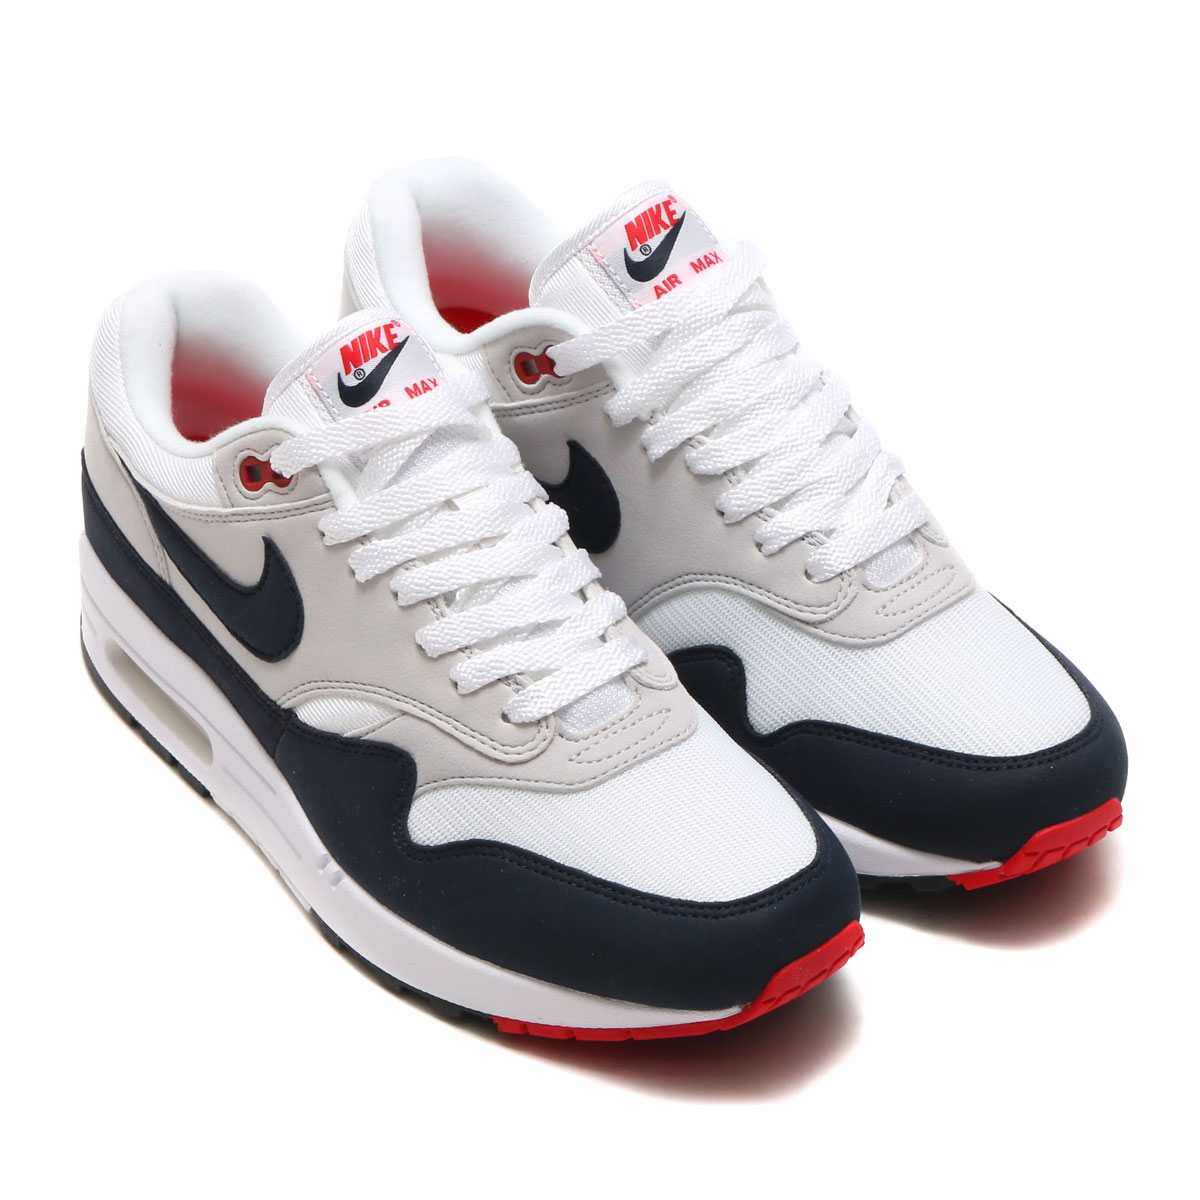 new arrival 4438e 44ced However, Air Max which established the window in Max Air クッショニング came up and  ...